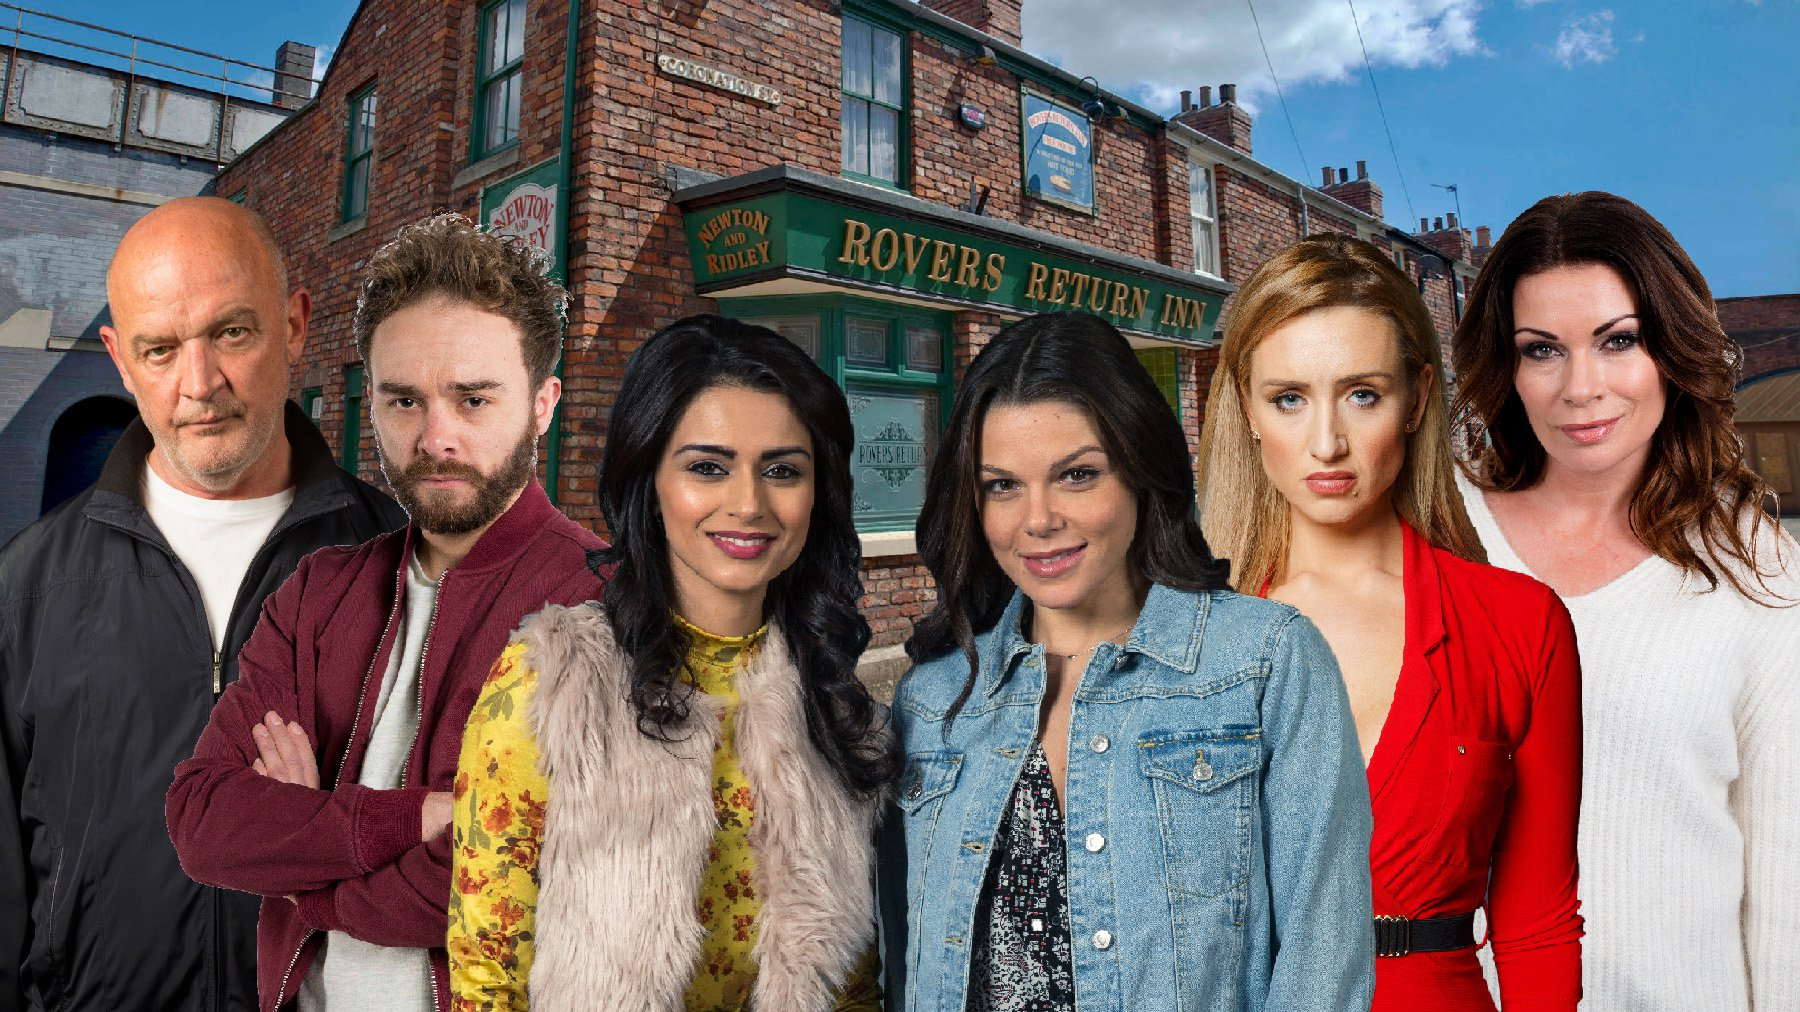 Inside Soap Awards 2018 results revealed: Coronation Street dominates with eight wins